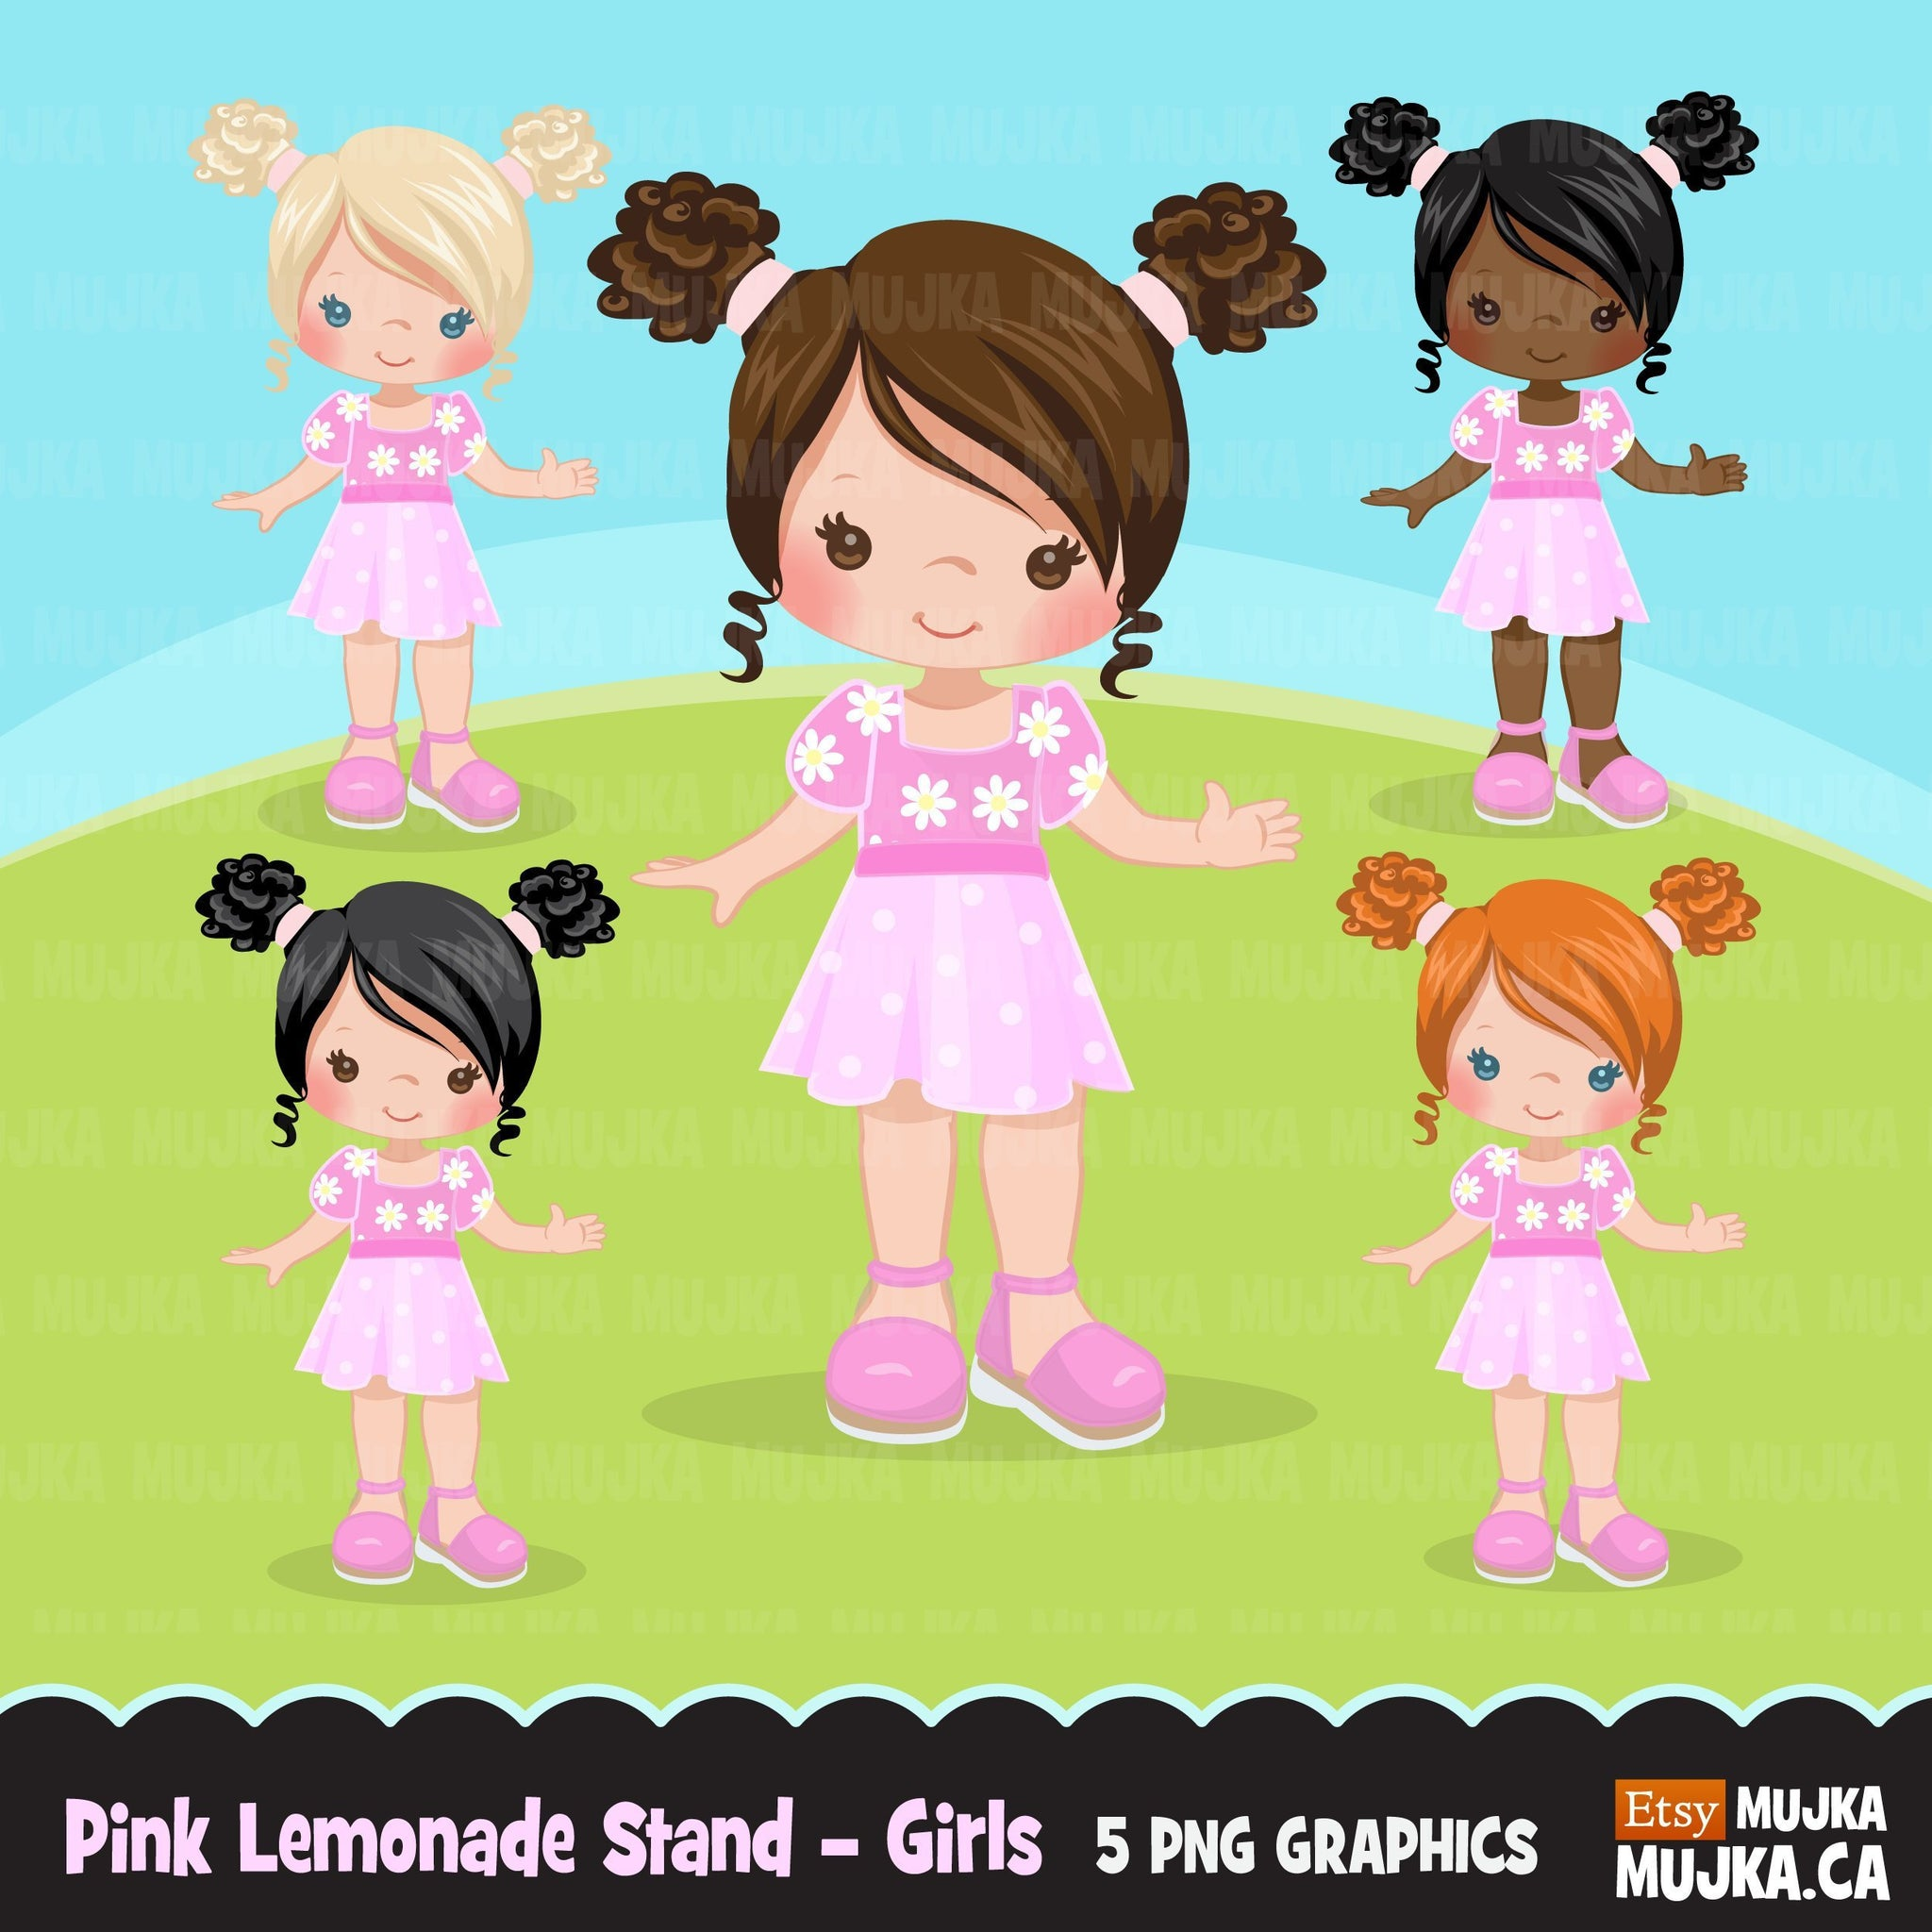 Pink Lemonade Stand Girls clipart summer